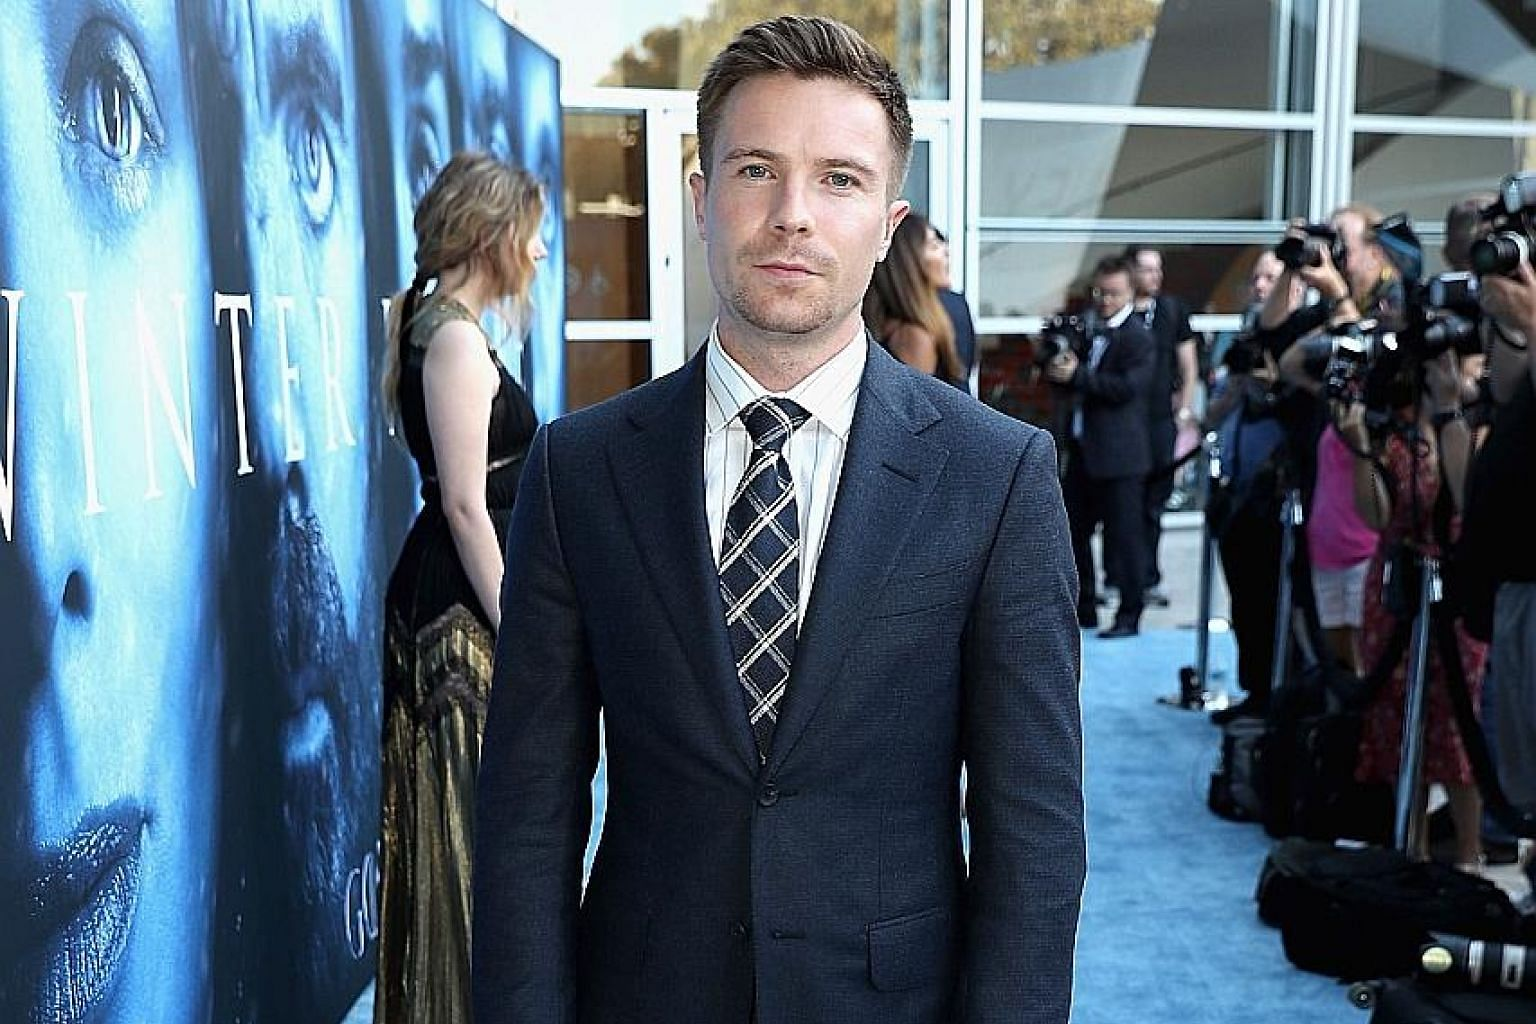 Actor Joe Dempsie received a lot of attention on the Internet after his character Gendry disappeared in the third season of Game Of Thrones.